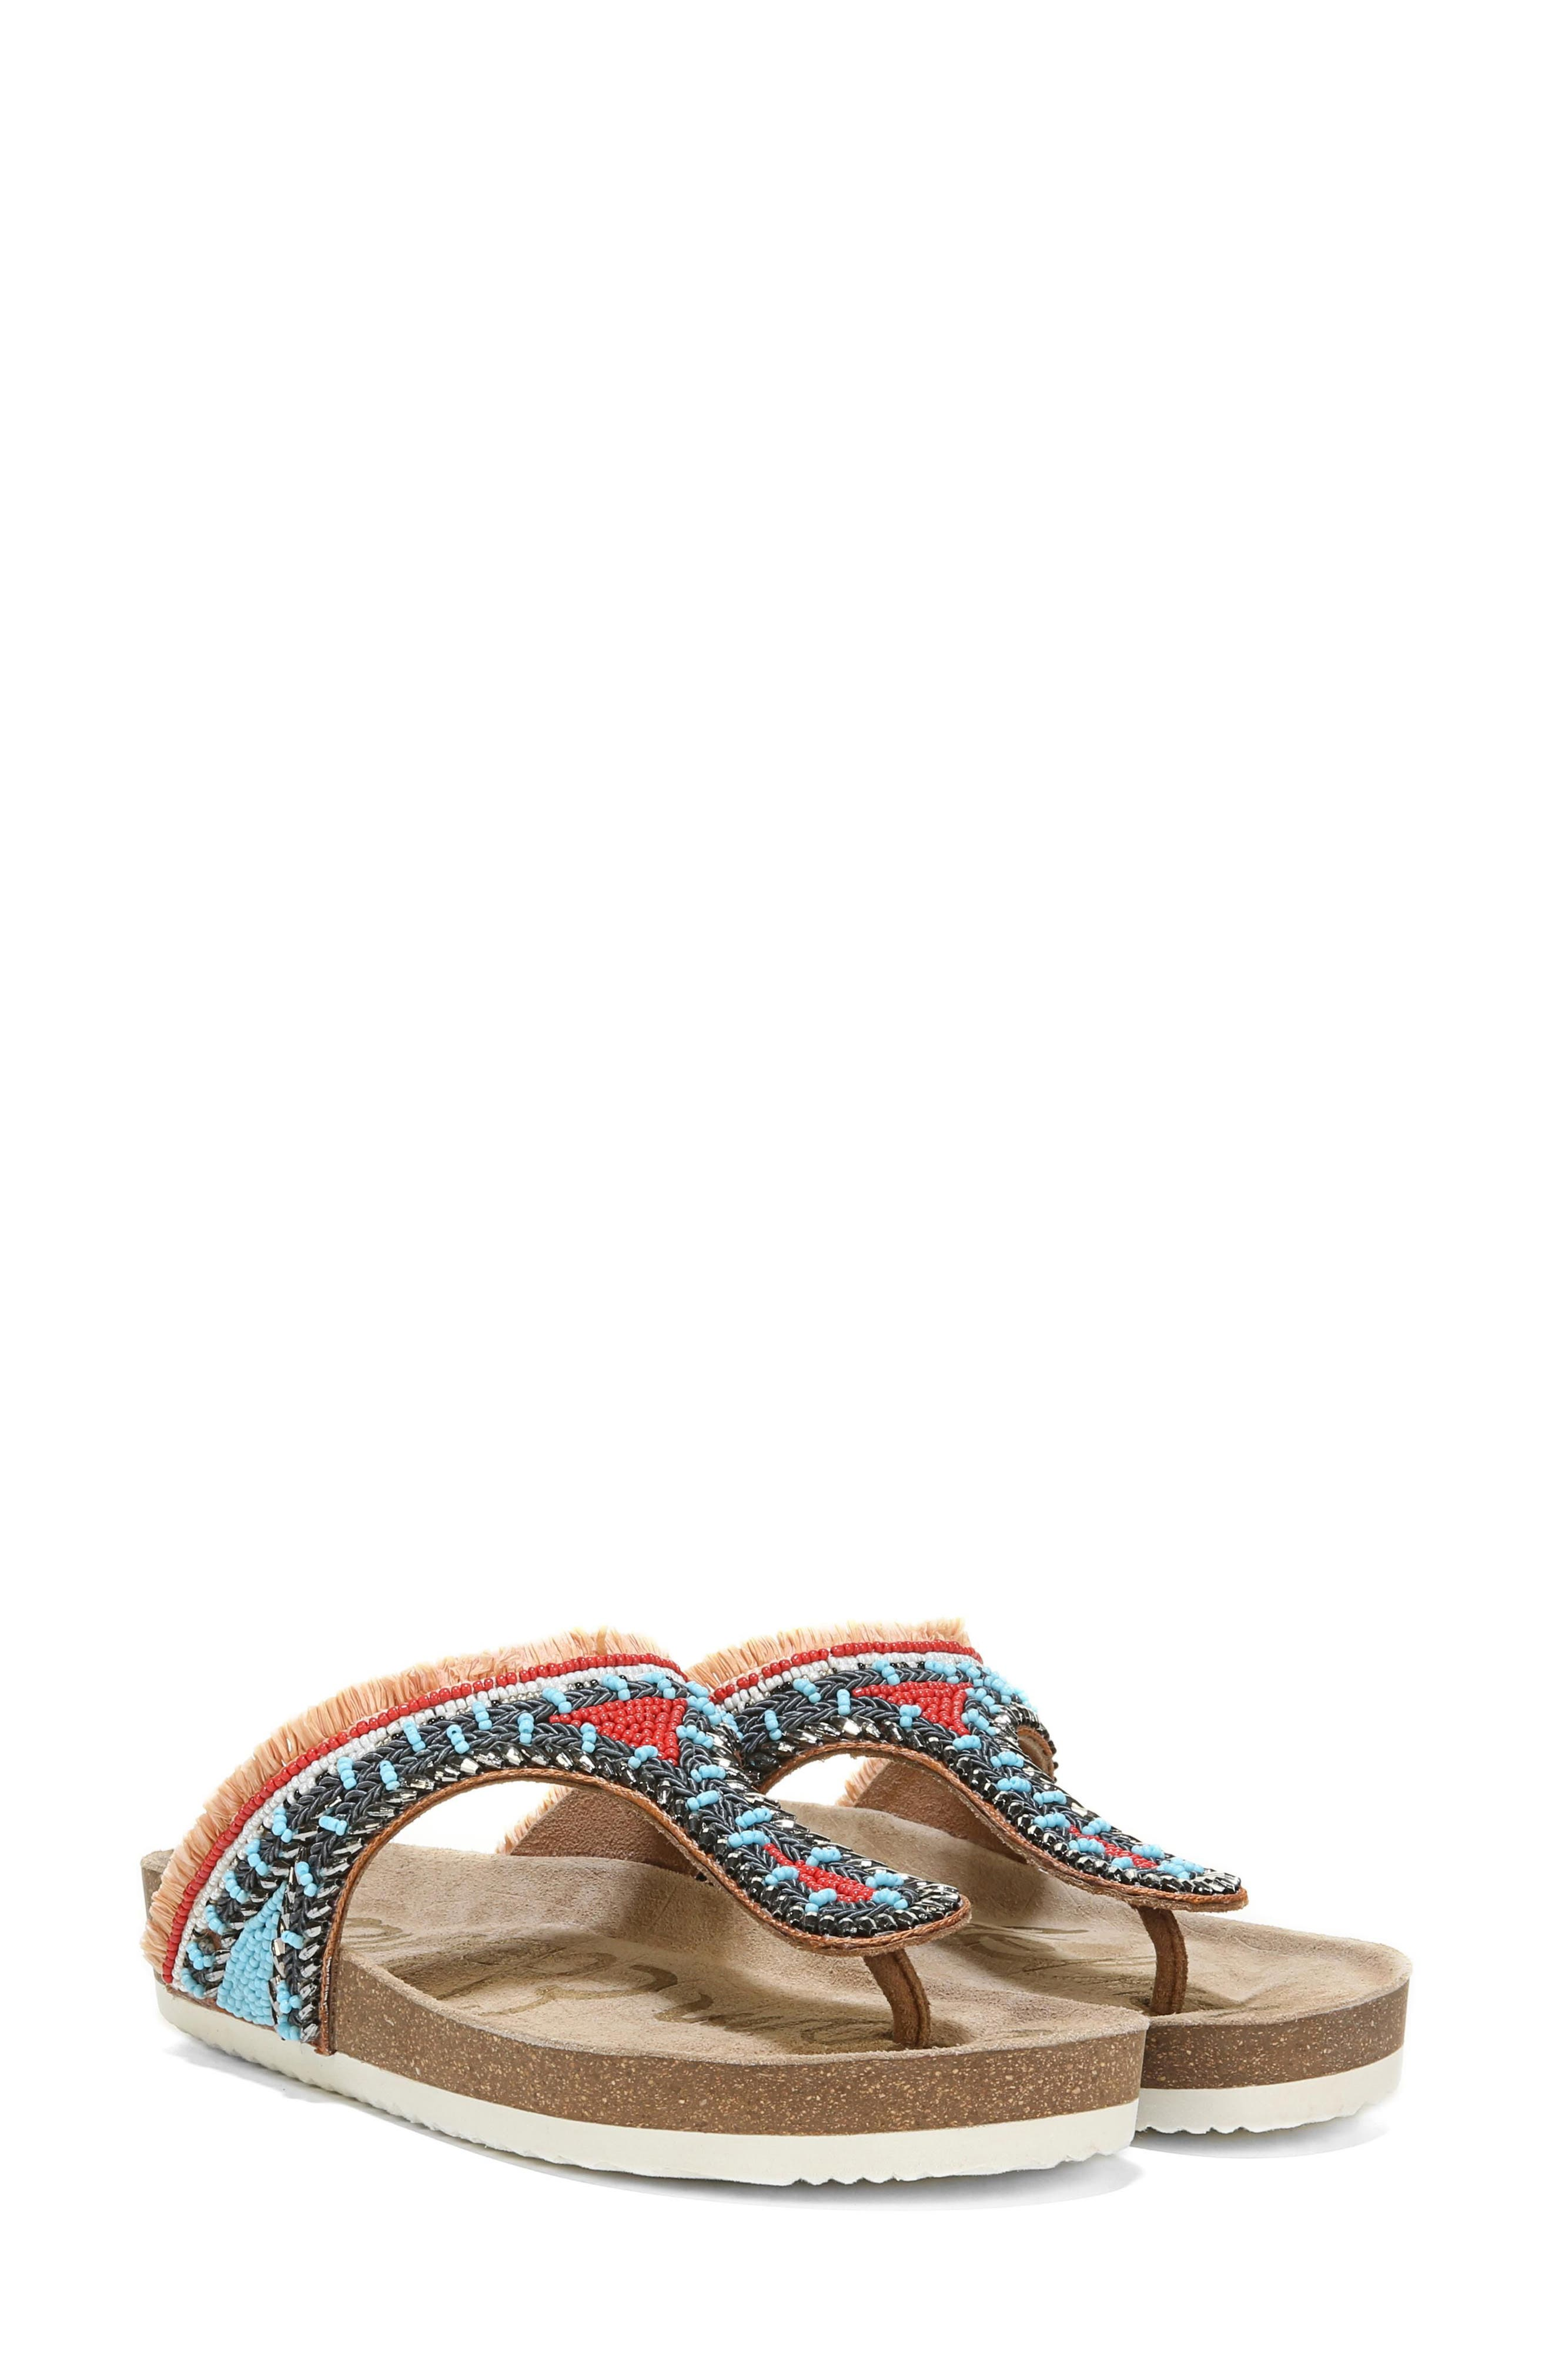 Olivie Beaded Flip Flop,                             Main thumbnail 1, color,                             SADDLE/ BLUE MULTI